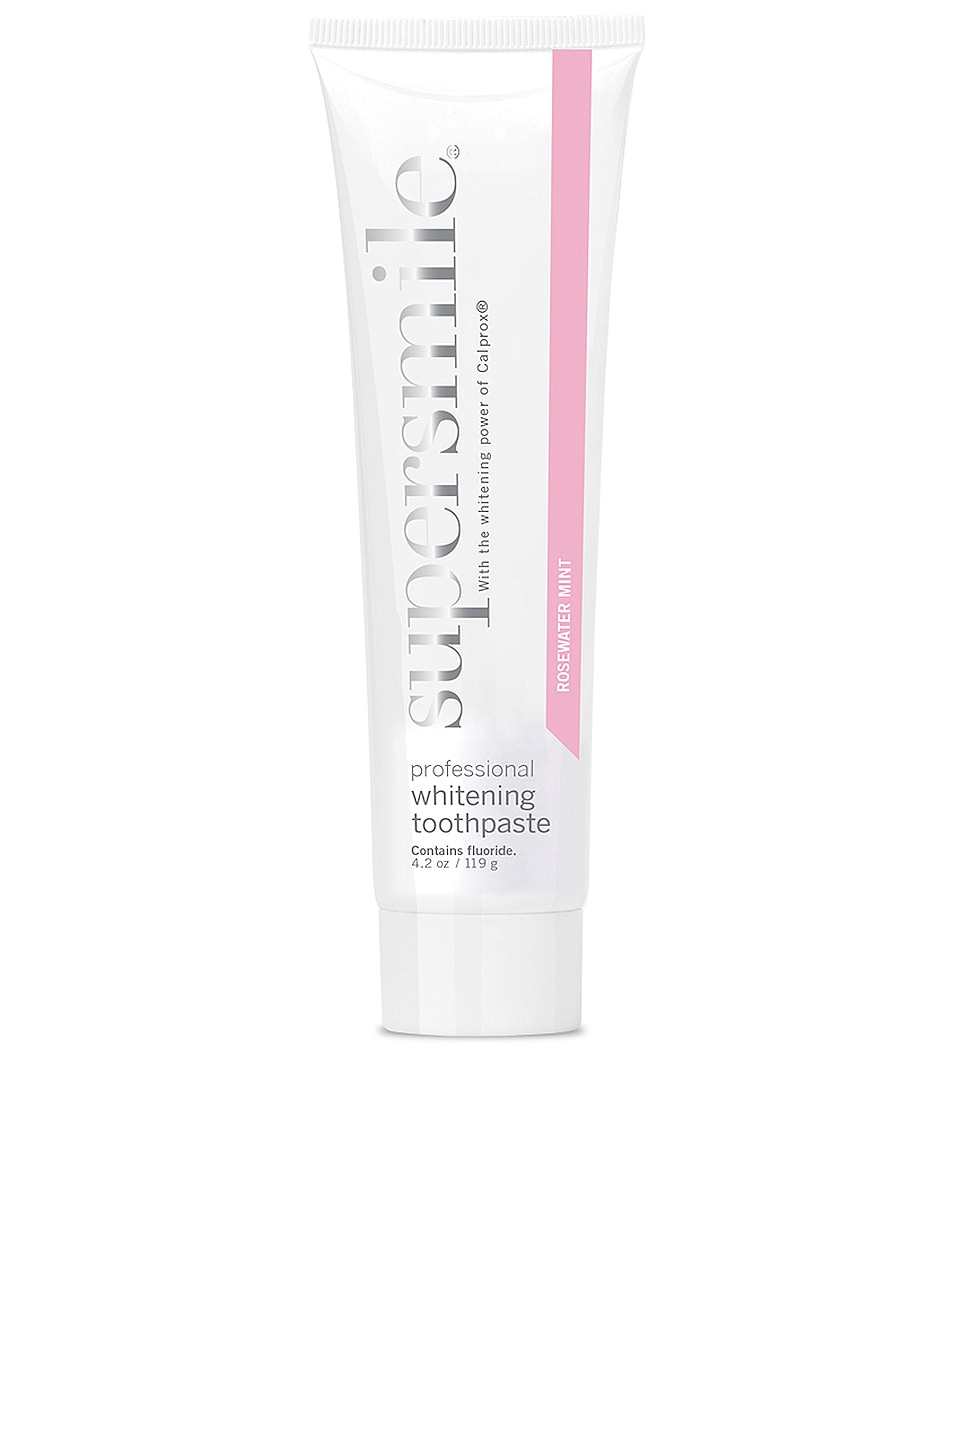 supersmile Professional Whitening Toothpaste in Rosewater Mint